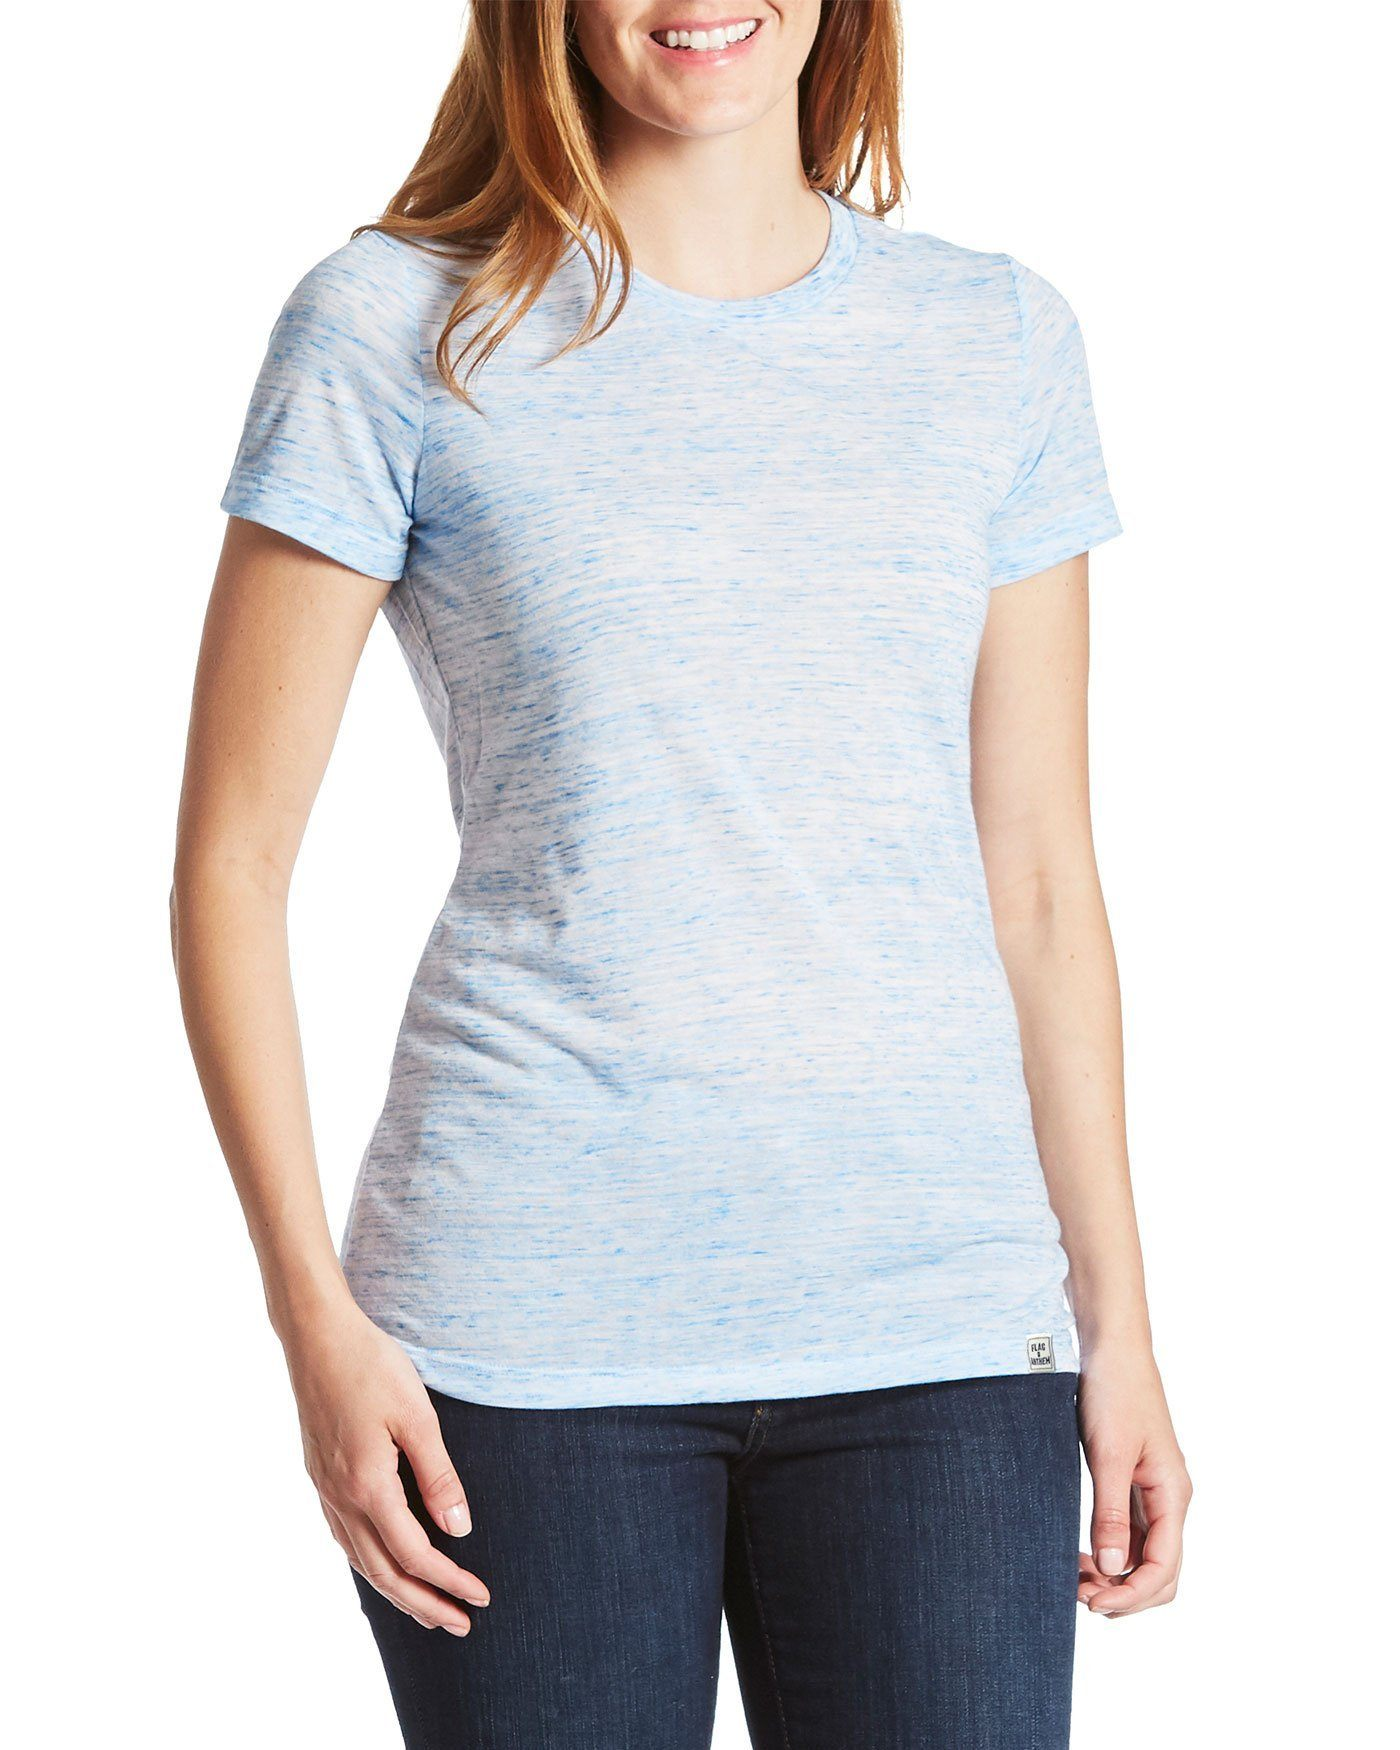 Women's Tees - Byrnedale Womens Tee - White/Blue (FINAL SALE)